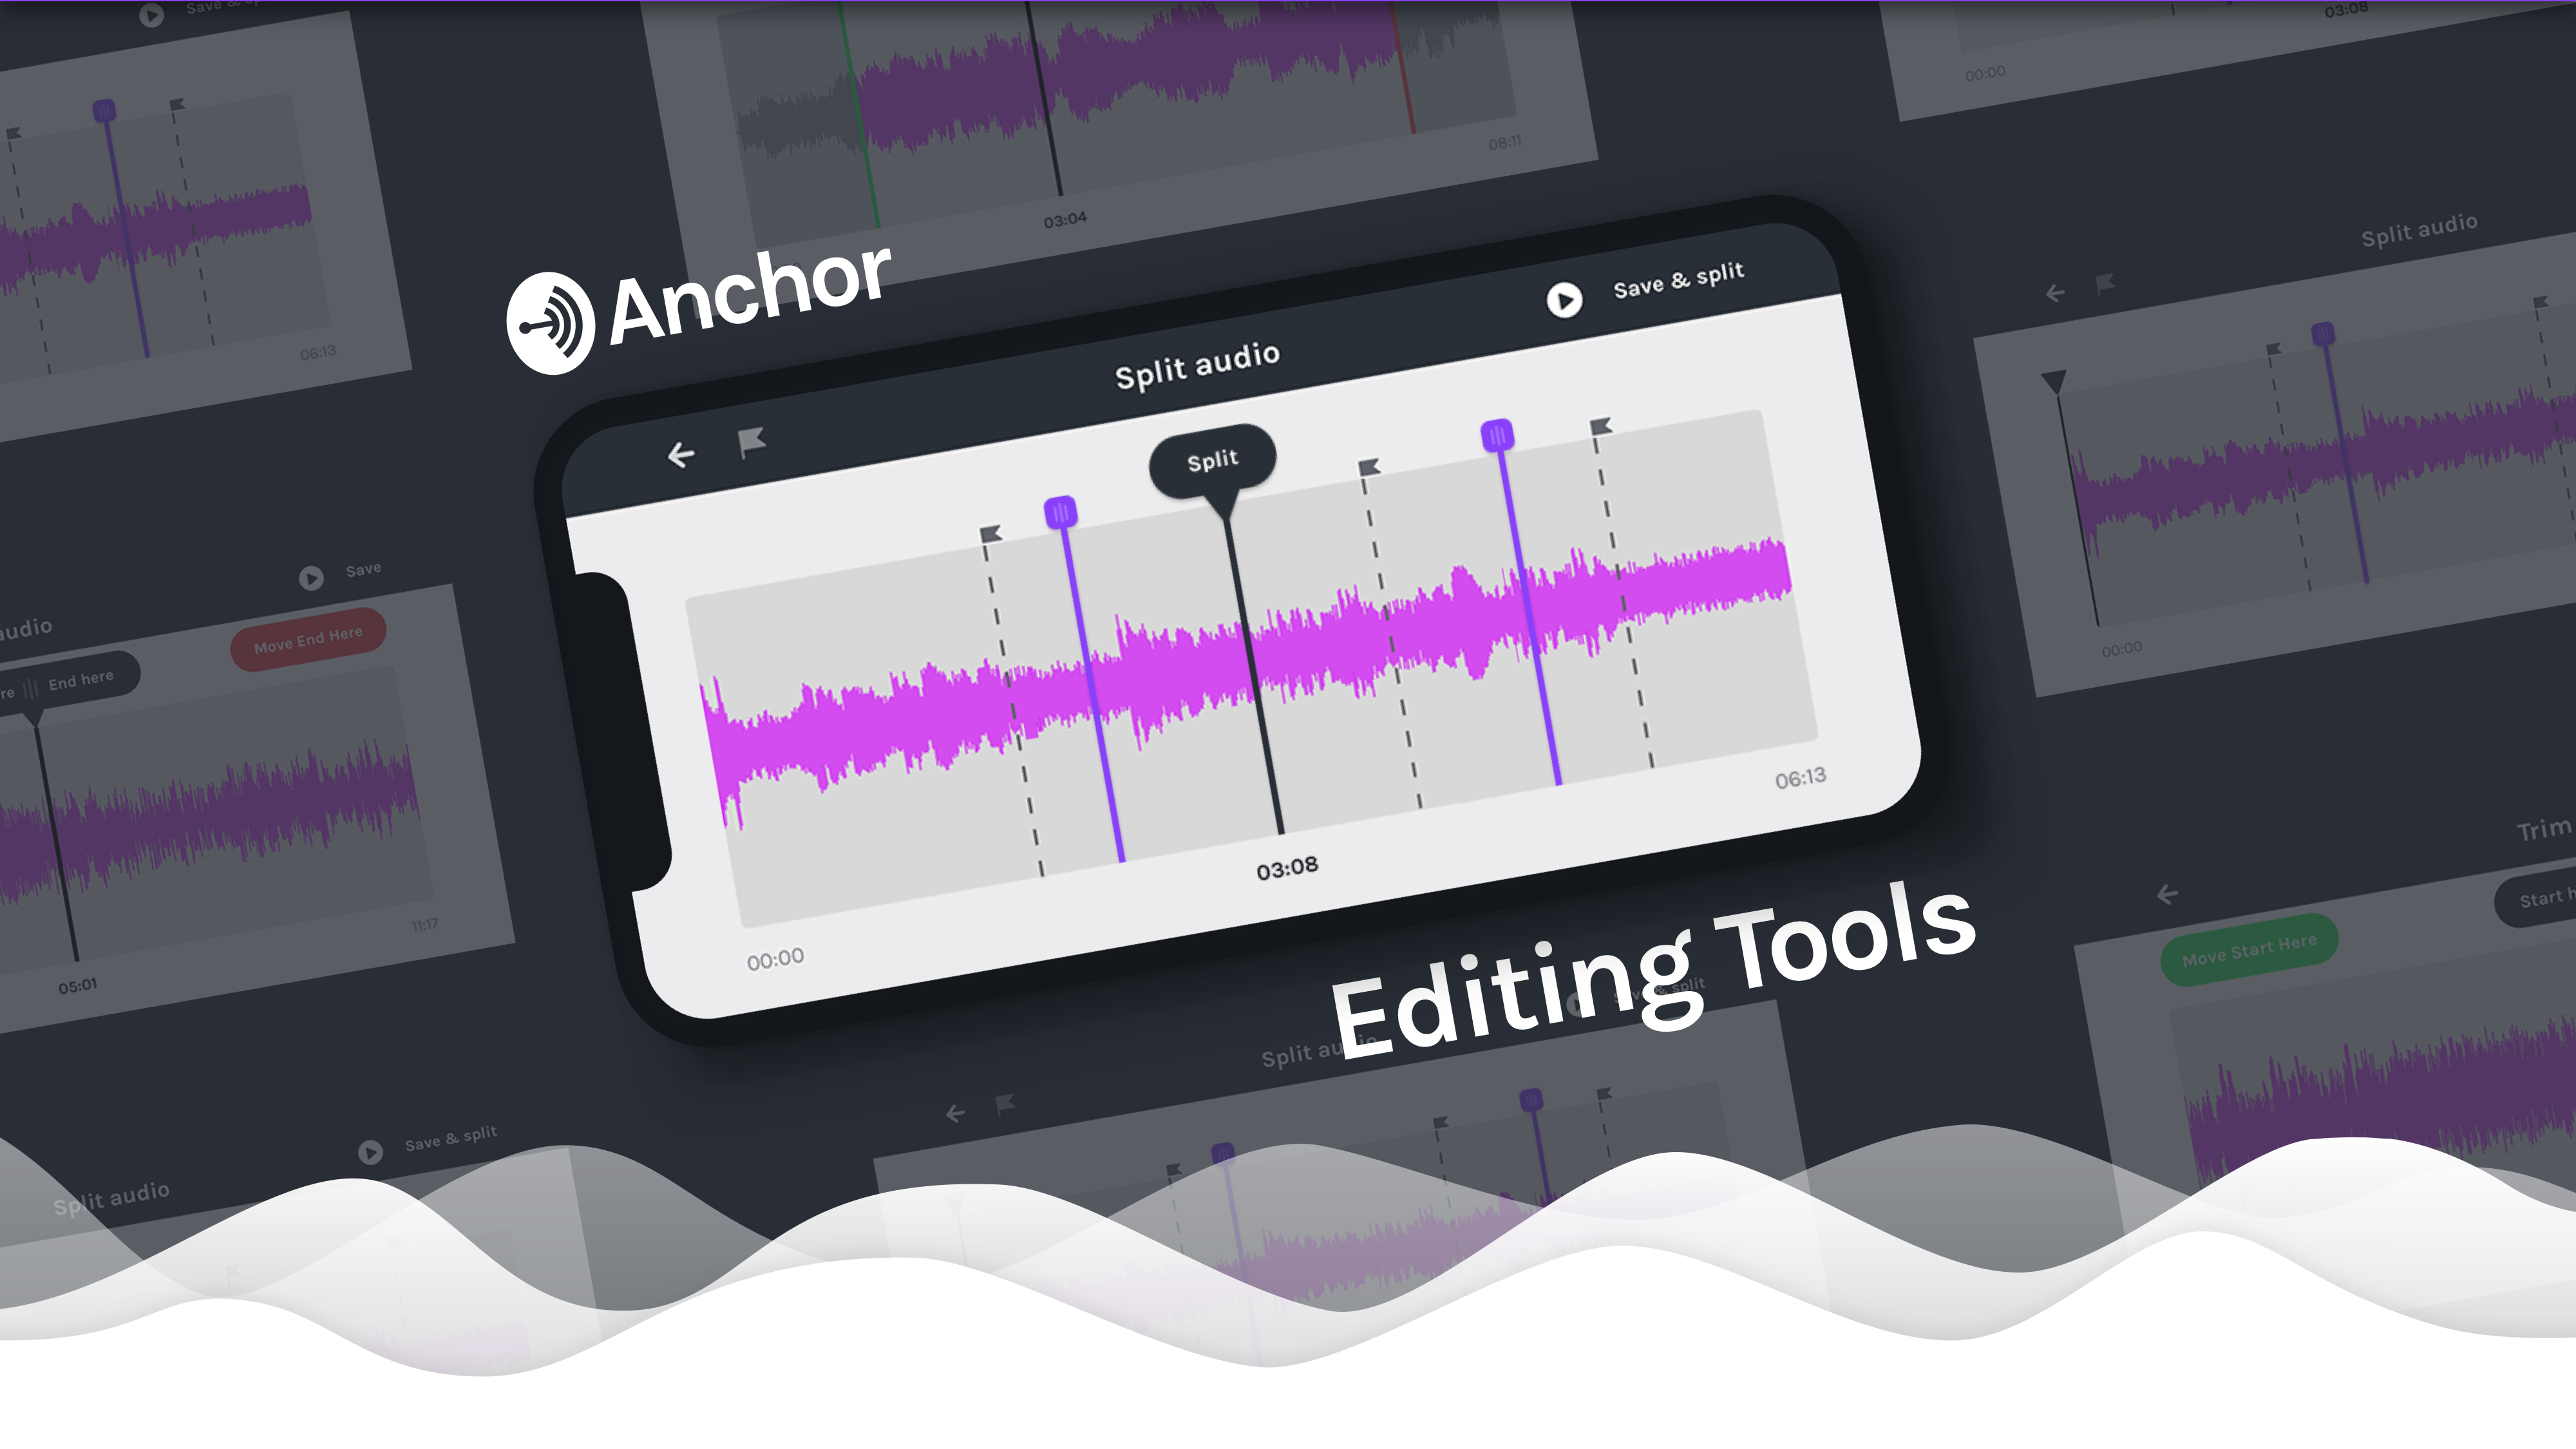 New from Anchor: the first audio editing tools built